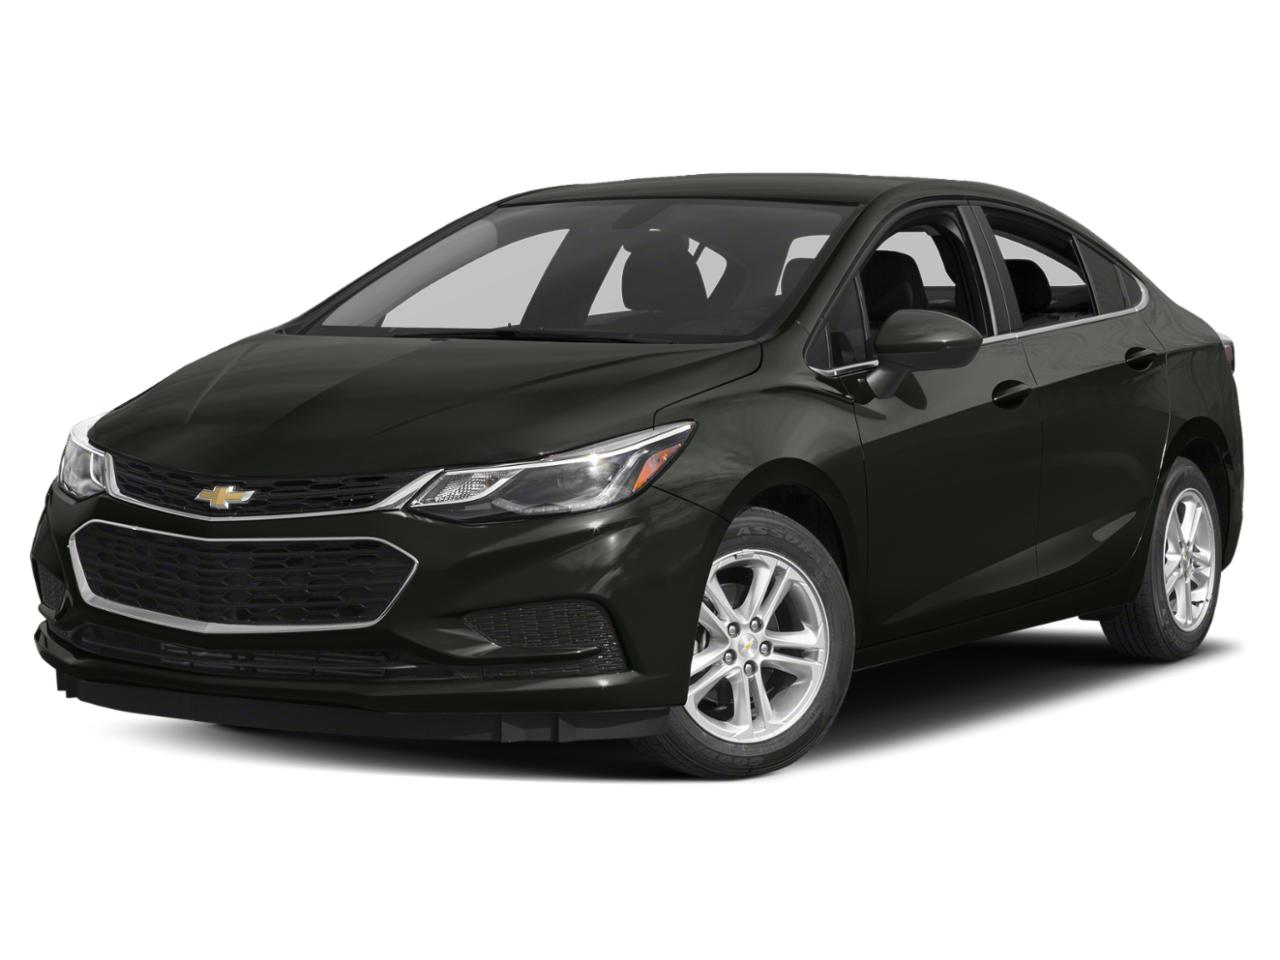 2018 Chevrolet Cruze Vehicle Photo in Willoughby Hills, OH 44092